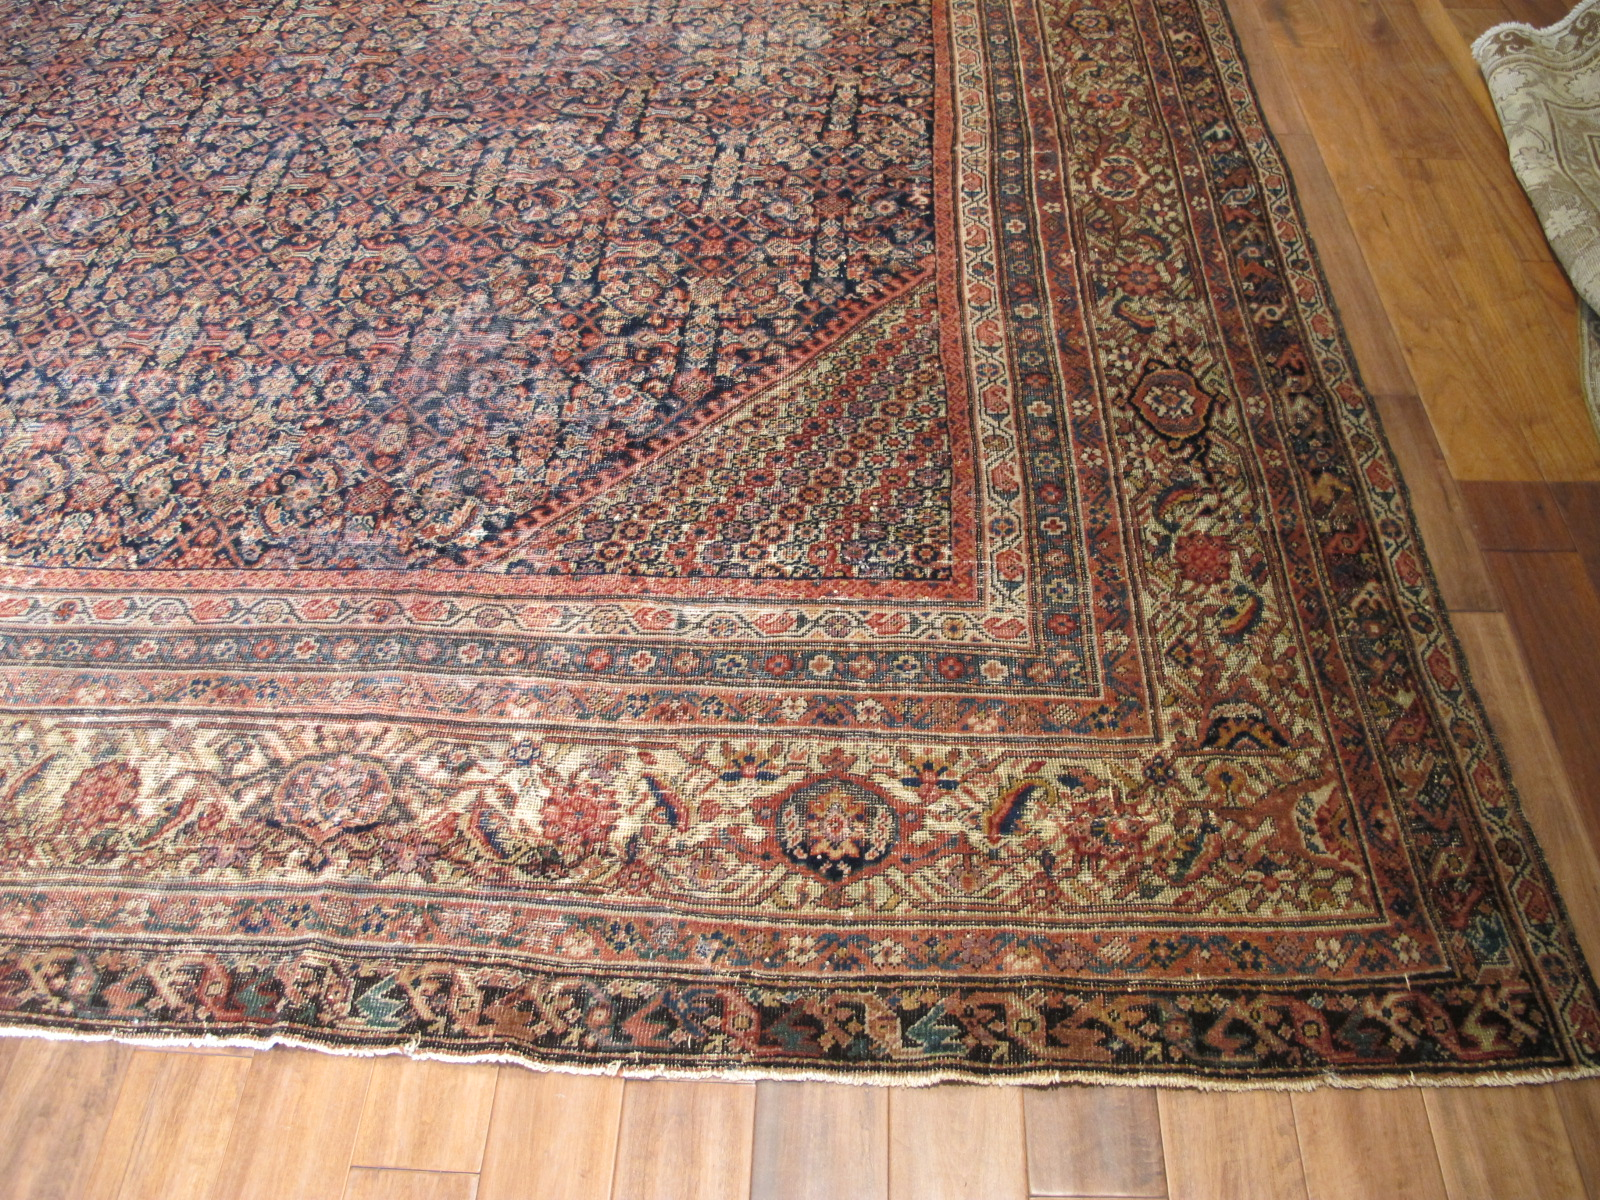 22329 antique persian mahal rug 12,3x16,7 (2)